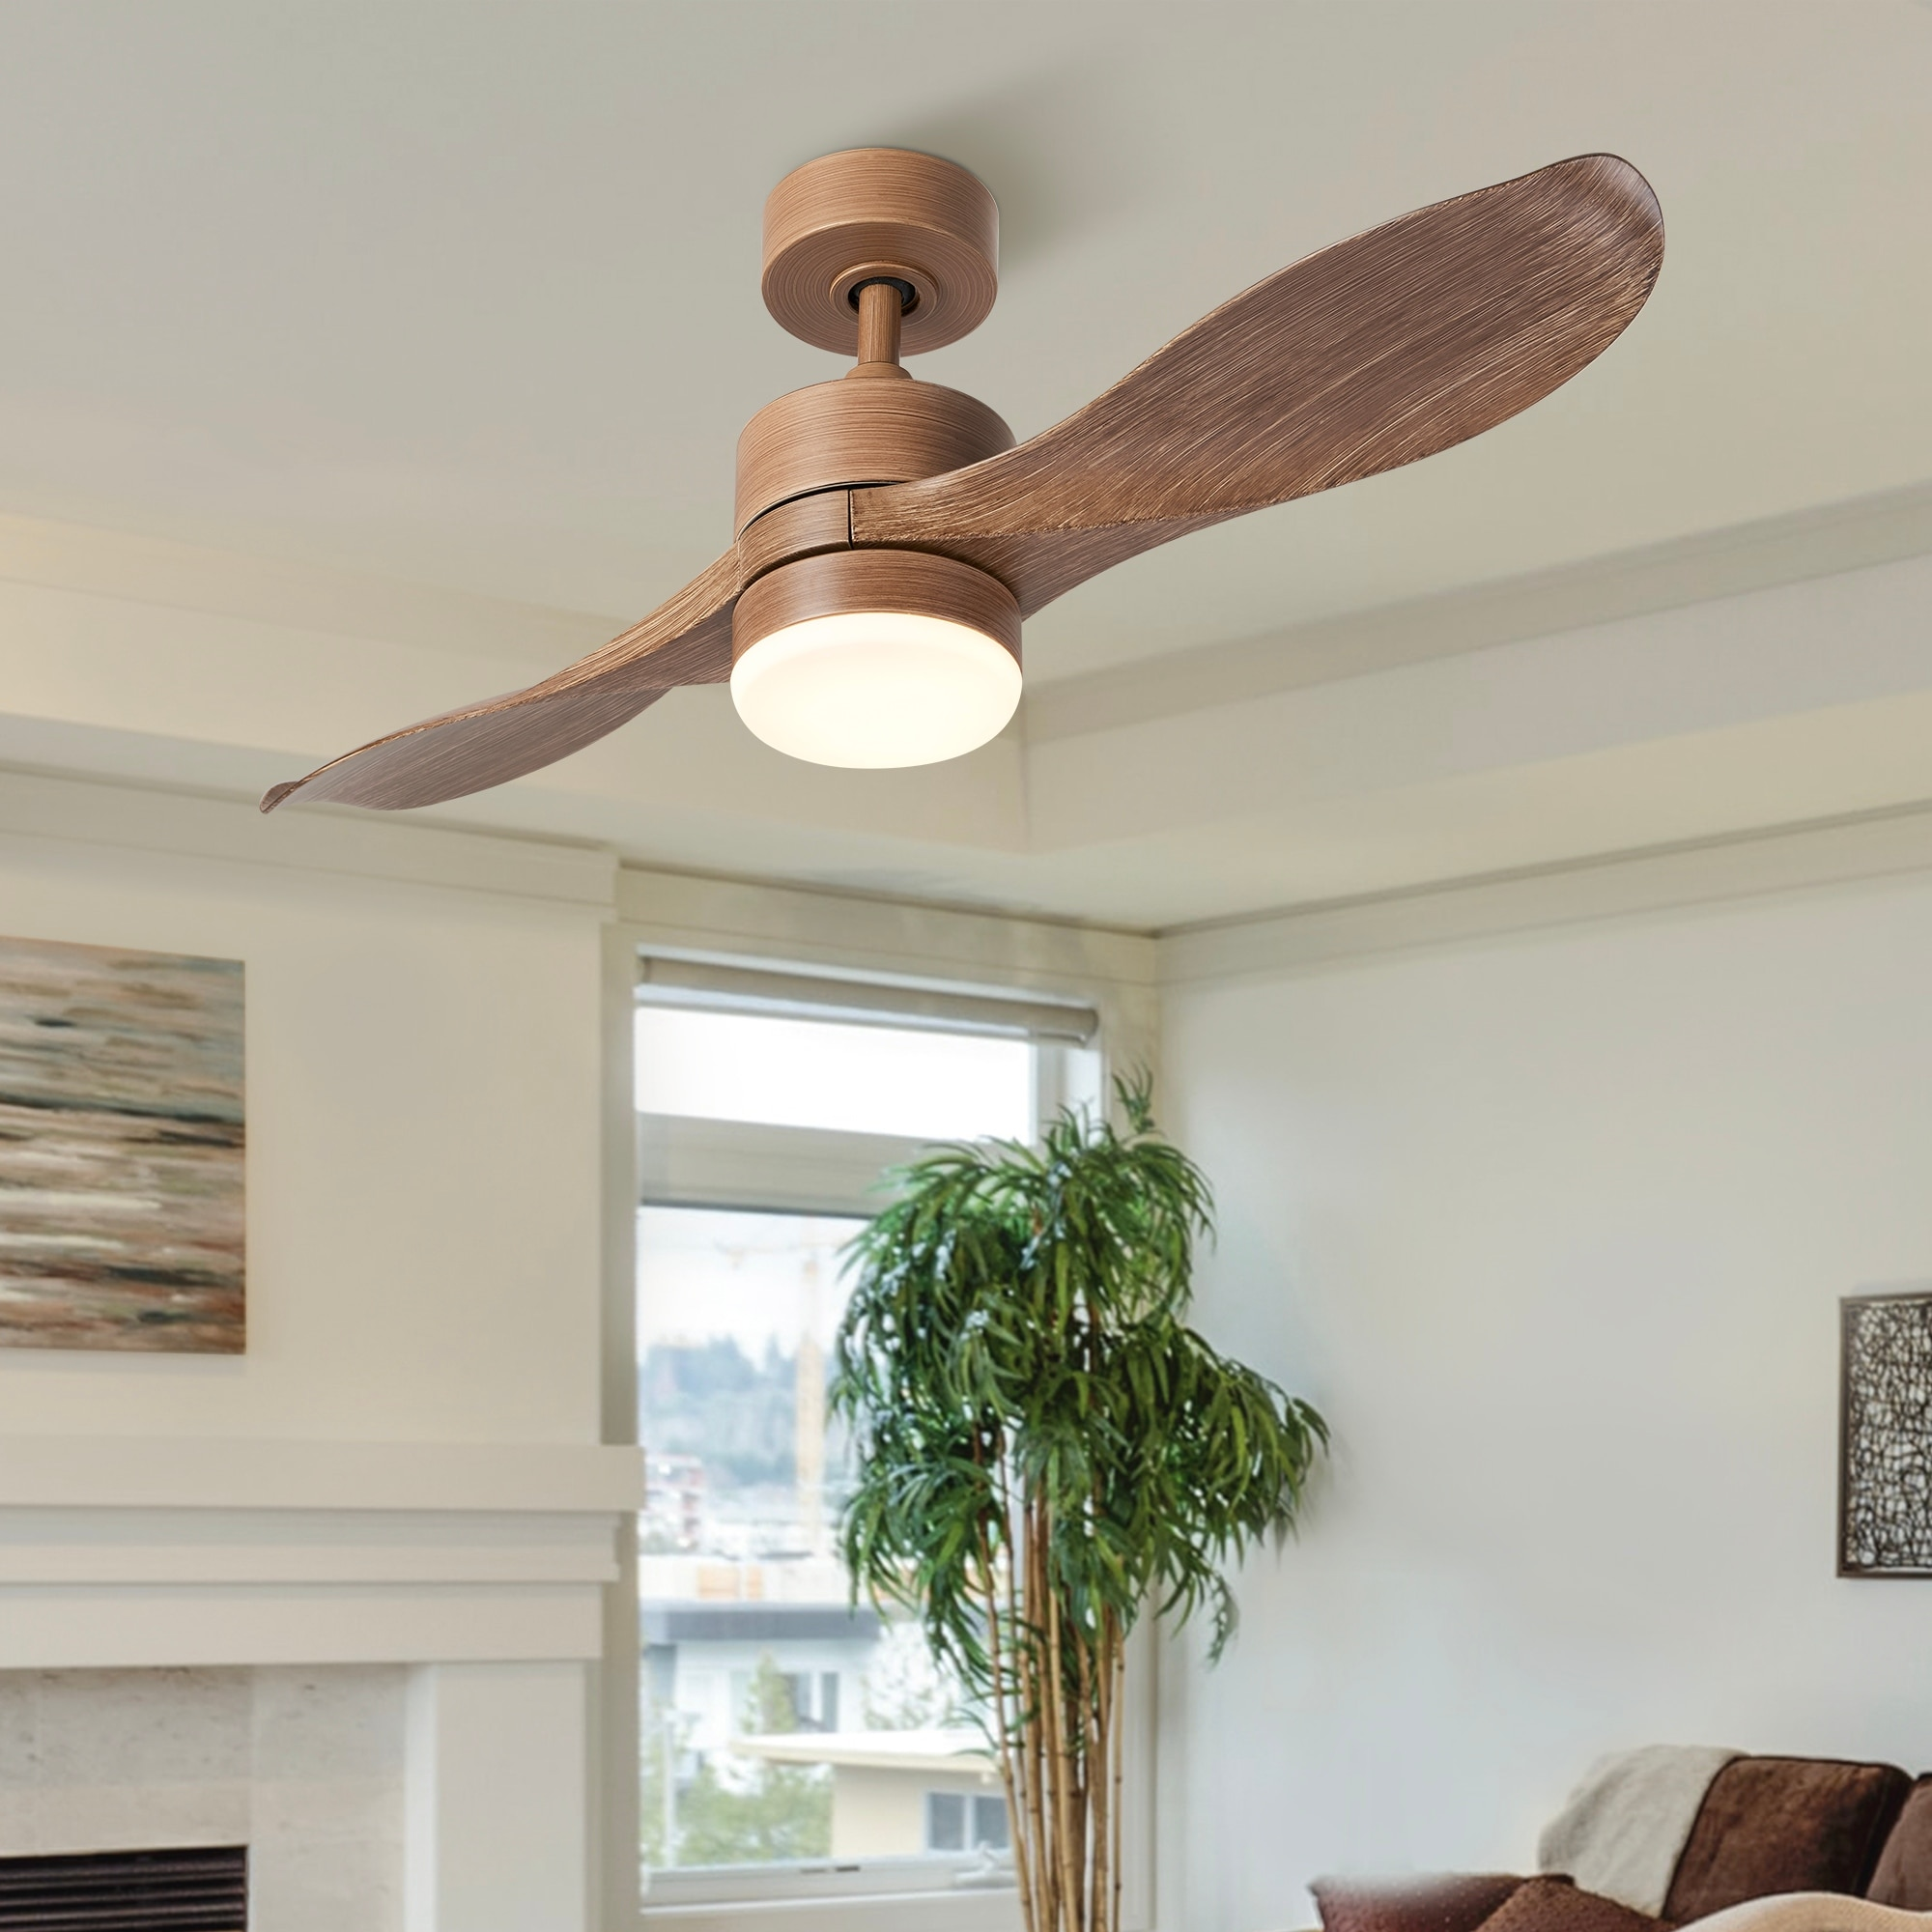 Co Z 42 2 Blade Reversible Led Ceiling Fan W Light Kit Remote Control Timer Overstock 31623938